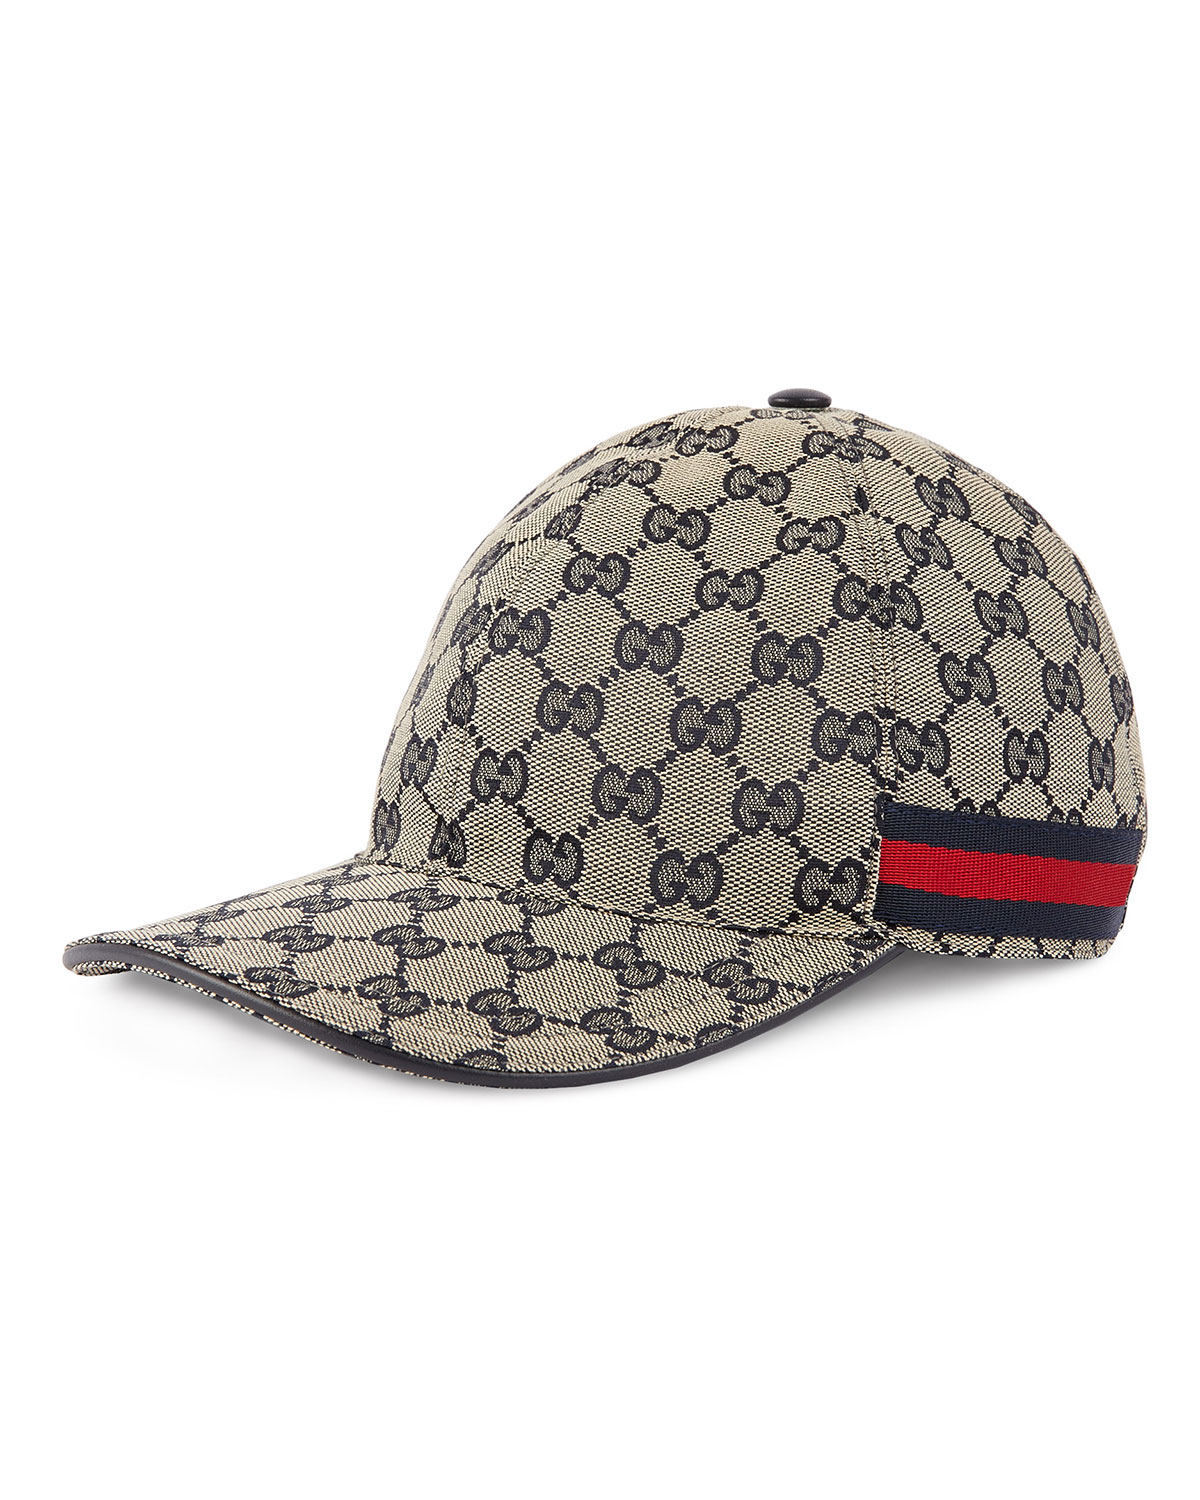 63b03d391a16d Gucci Men s GG Canvas Baseball Hat with Blue Red Web